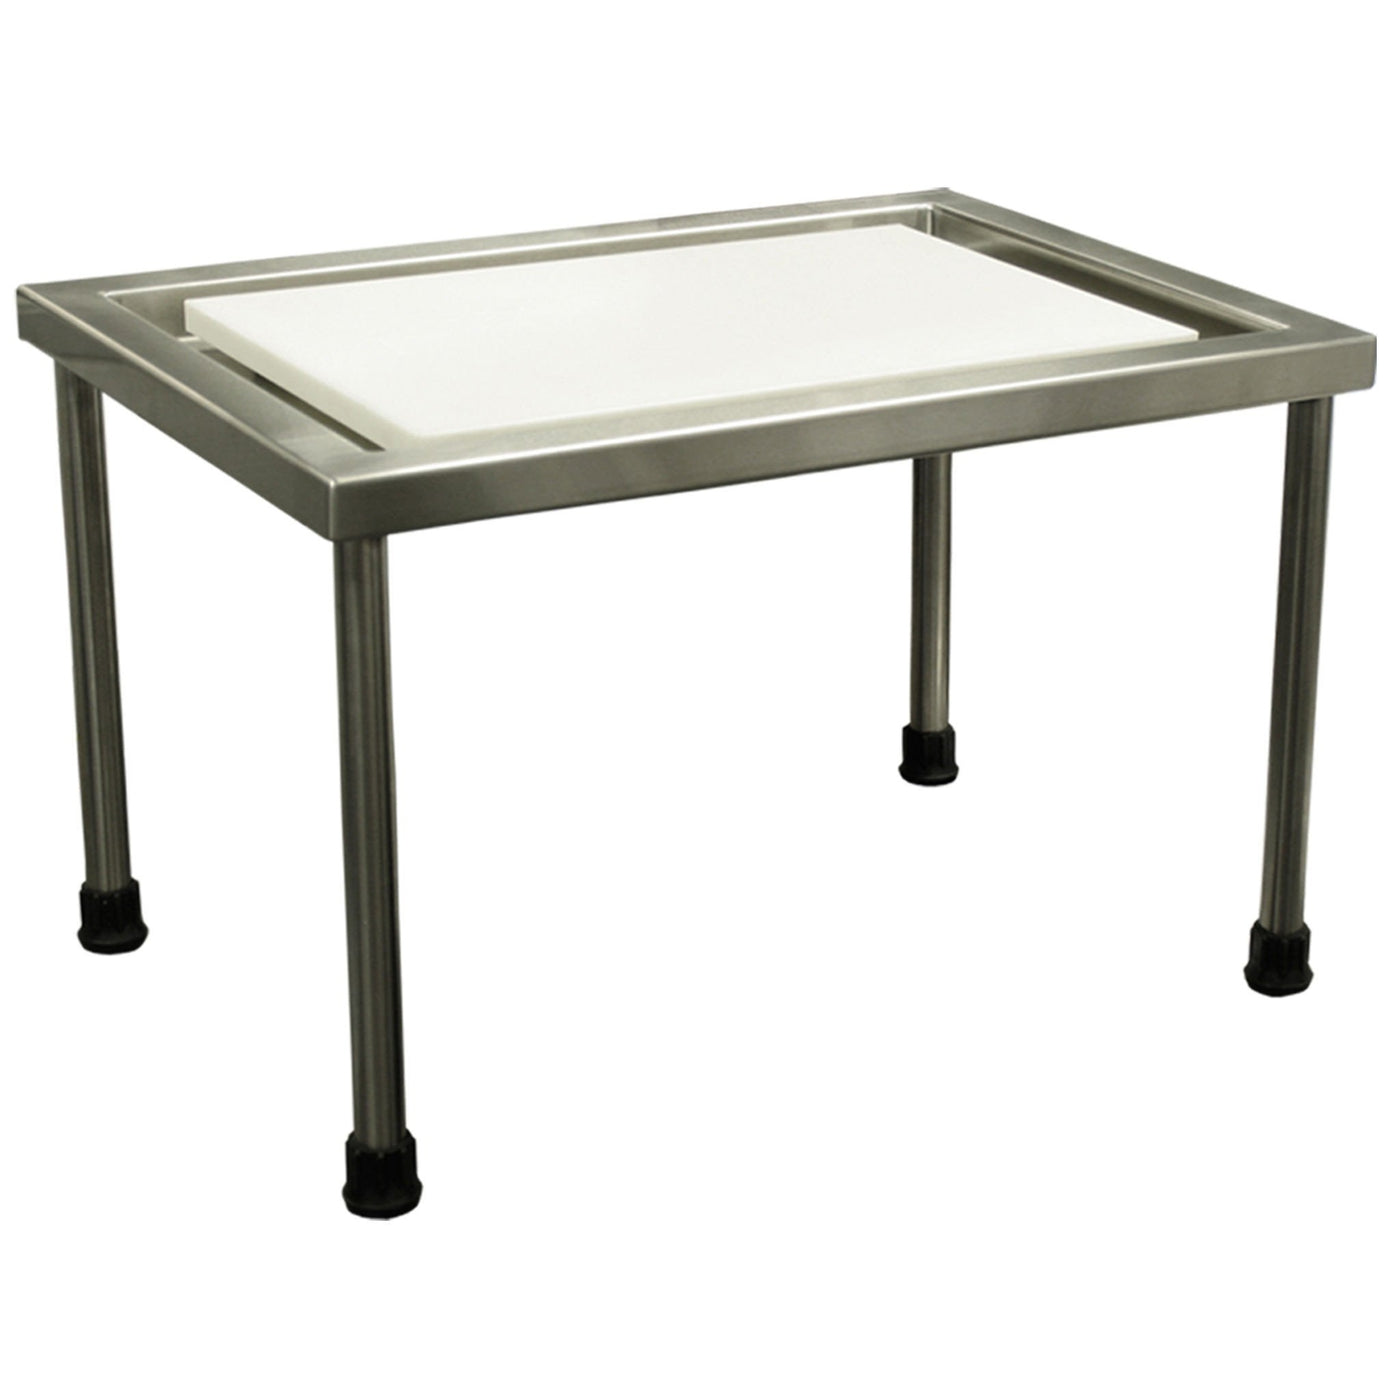 Raised Dissecting Platform-Laboratory Accessory-Mortech Manufacturing Company Inc. Quality Stainless Steel Autopsy, Morgue, Funeral Home, Necropsy, Veterinary / Anatomy, Dissection Equipment and Accessories